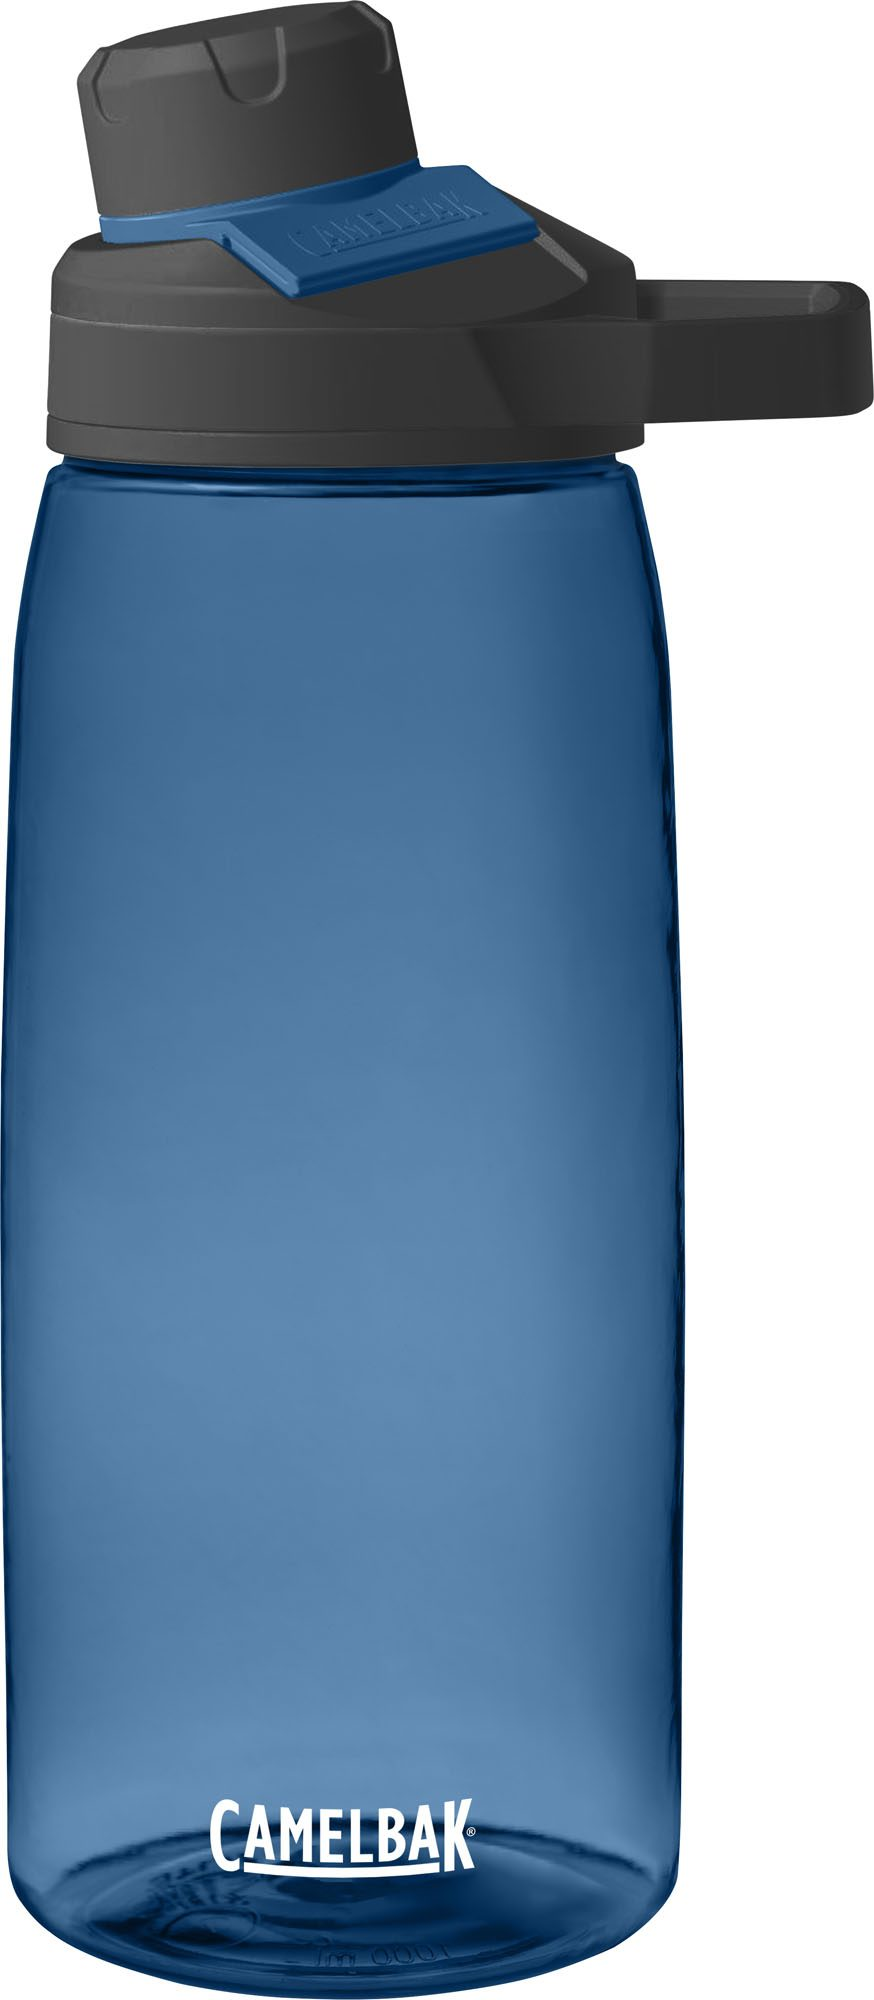 CamelBak chute Mag 1L Waterbottle